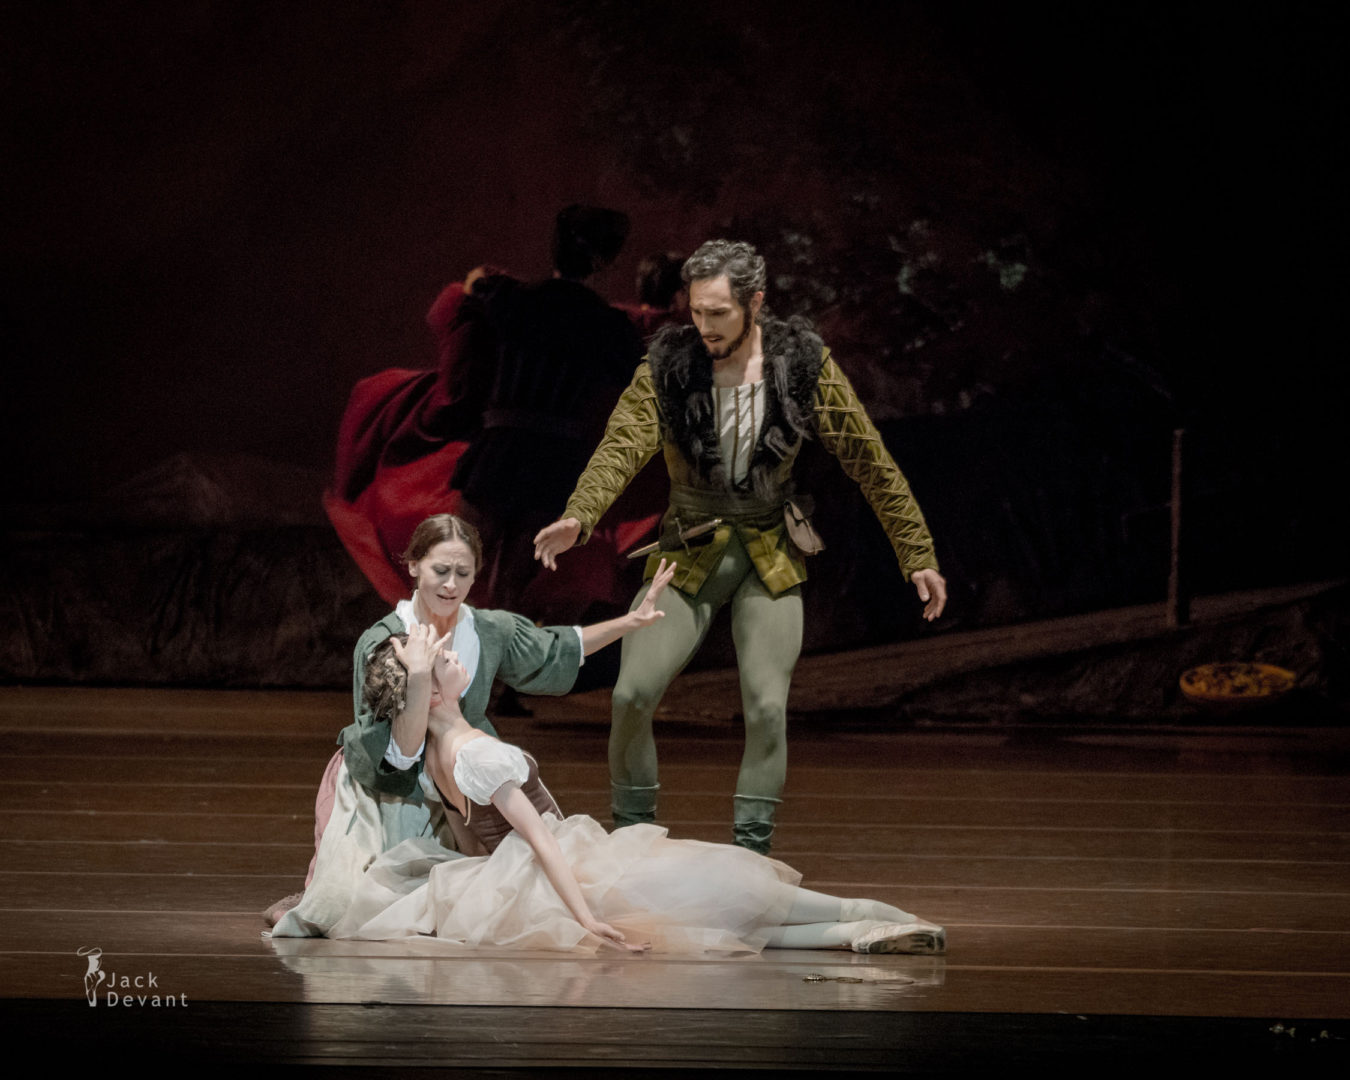 Maria Shirinkina and Hilarion, Matej Urban Berthe, Séverine Ferrolier in Giselle